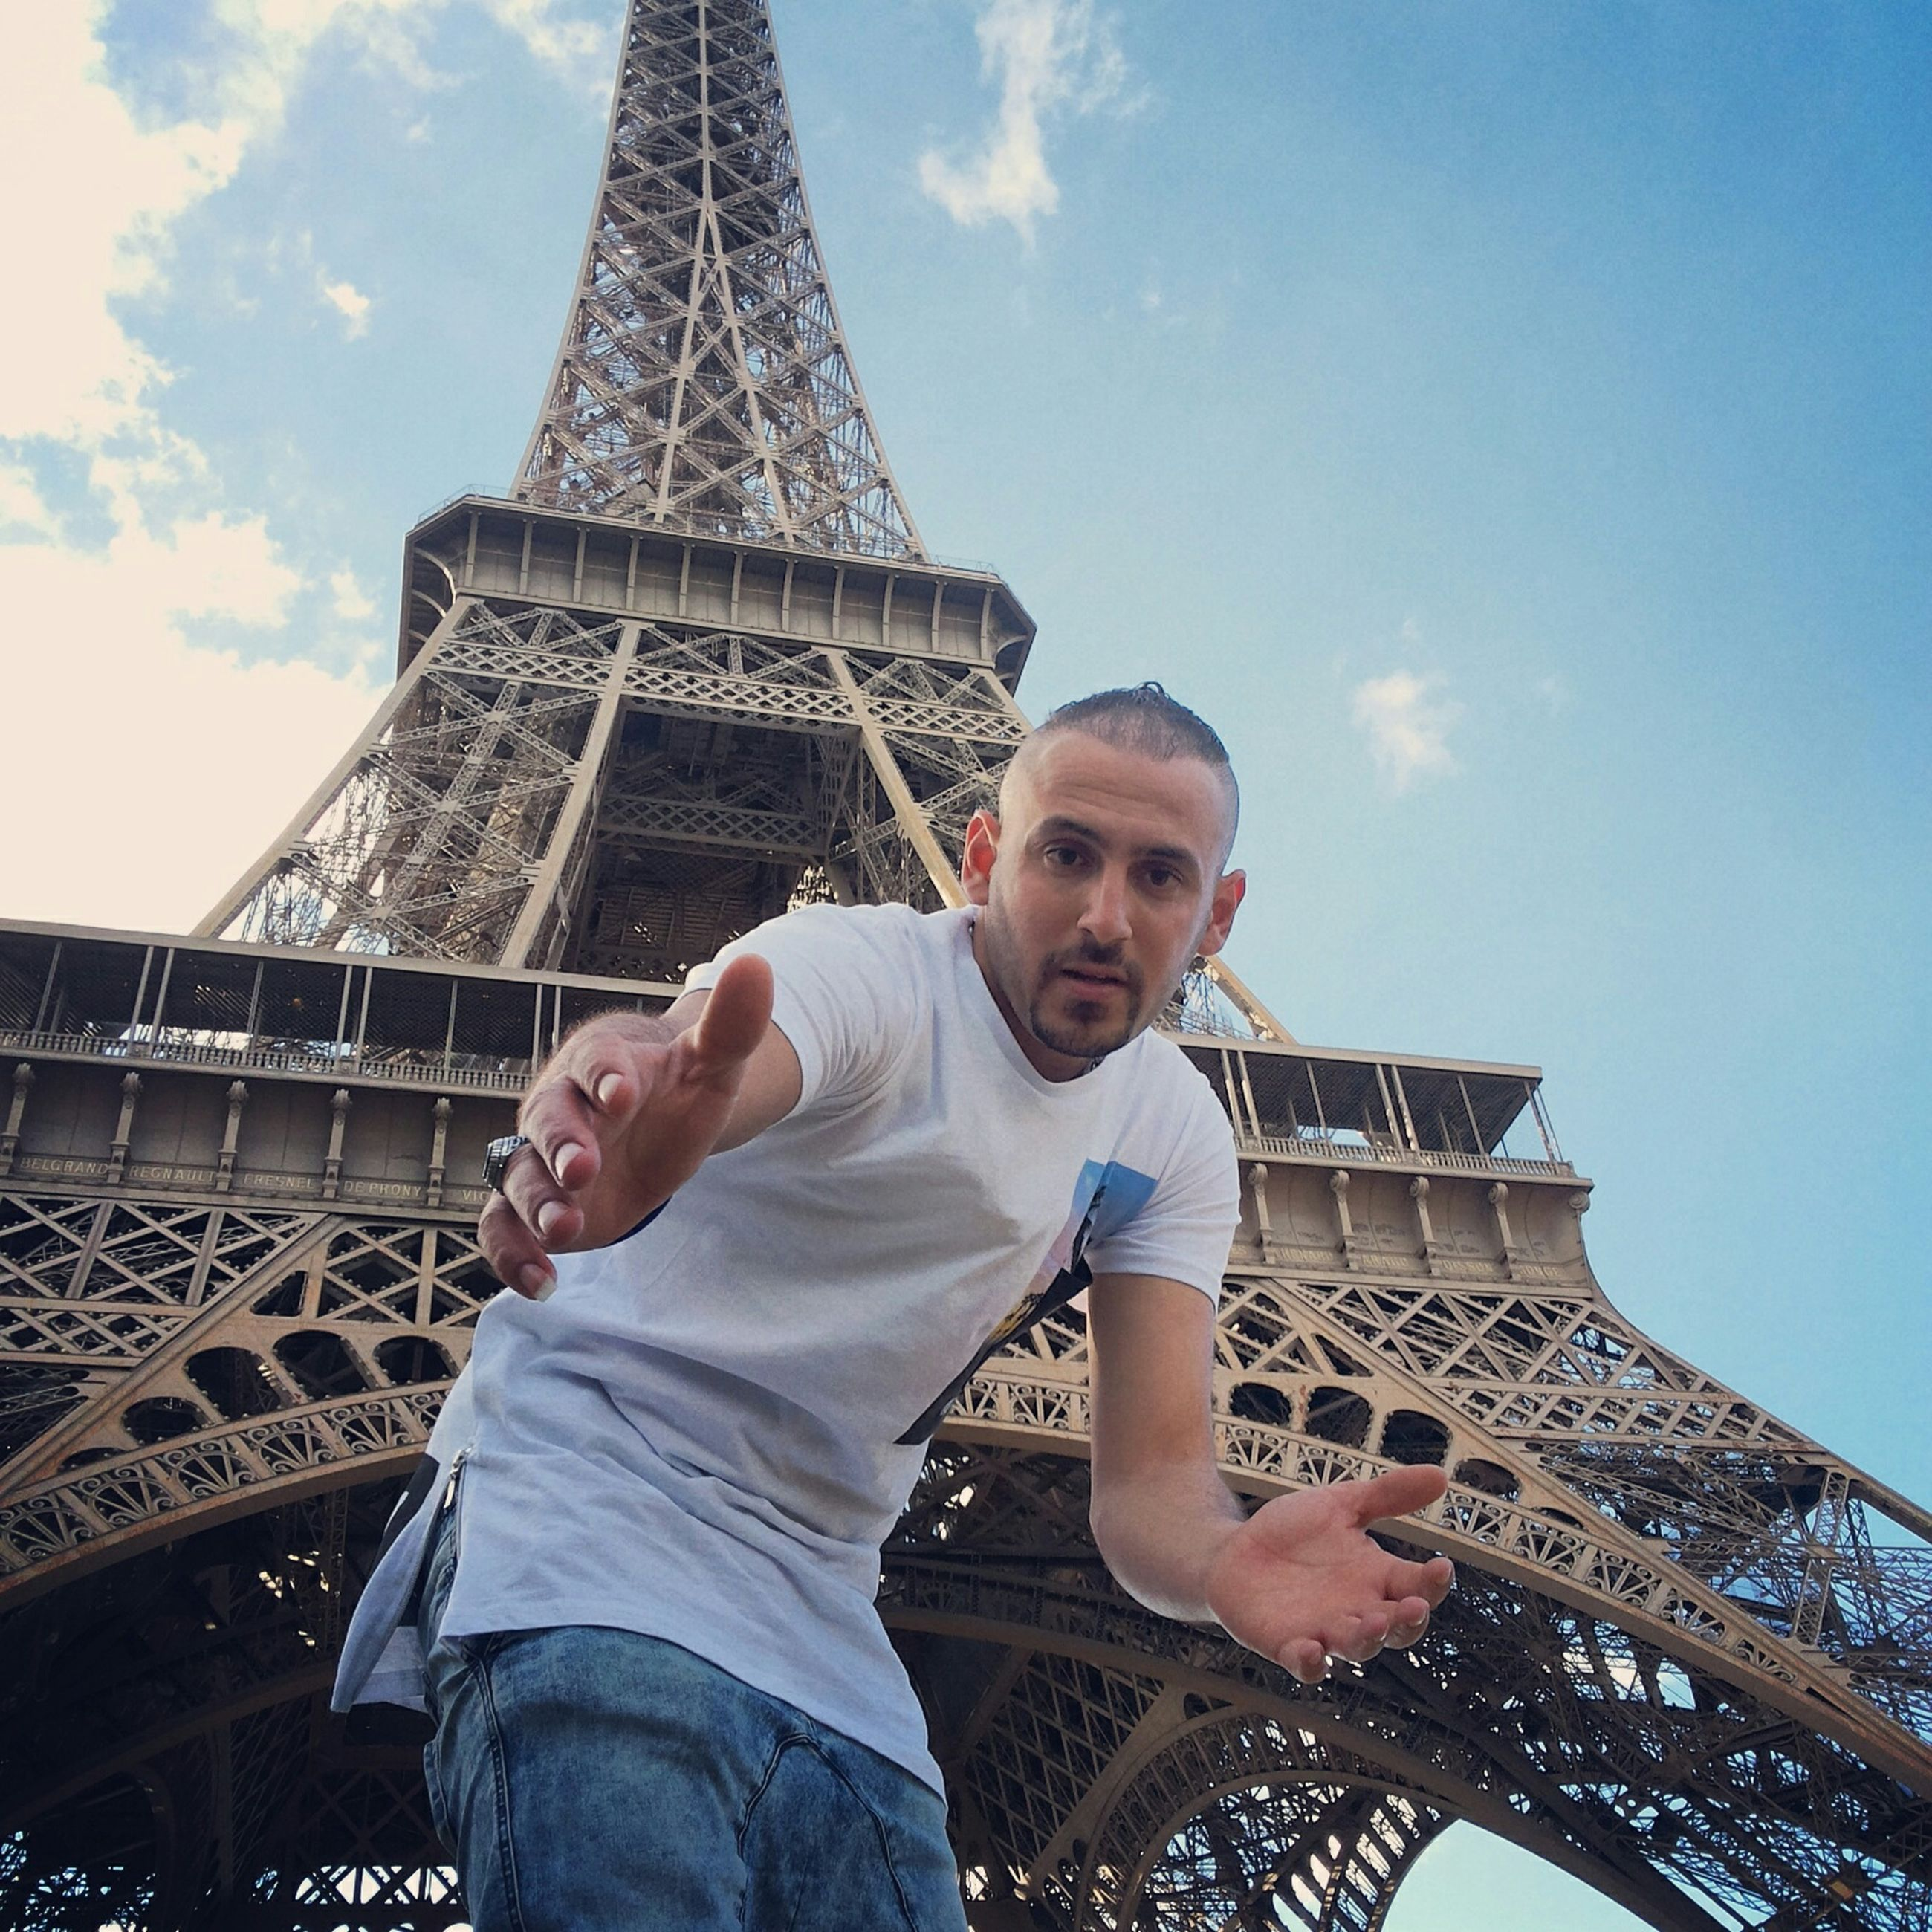 low angle view, built structure, architecture, lifestyles, leisure activity, casual clothing, sky, famous place, tall - high, capital cities, tower, eiffel tower, person, tourism, international landmark, travel destinations, travel, metal